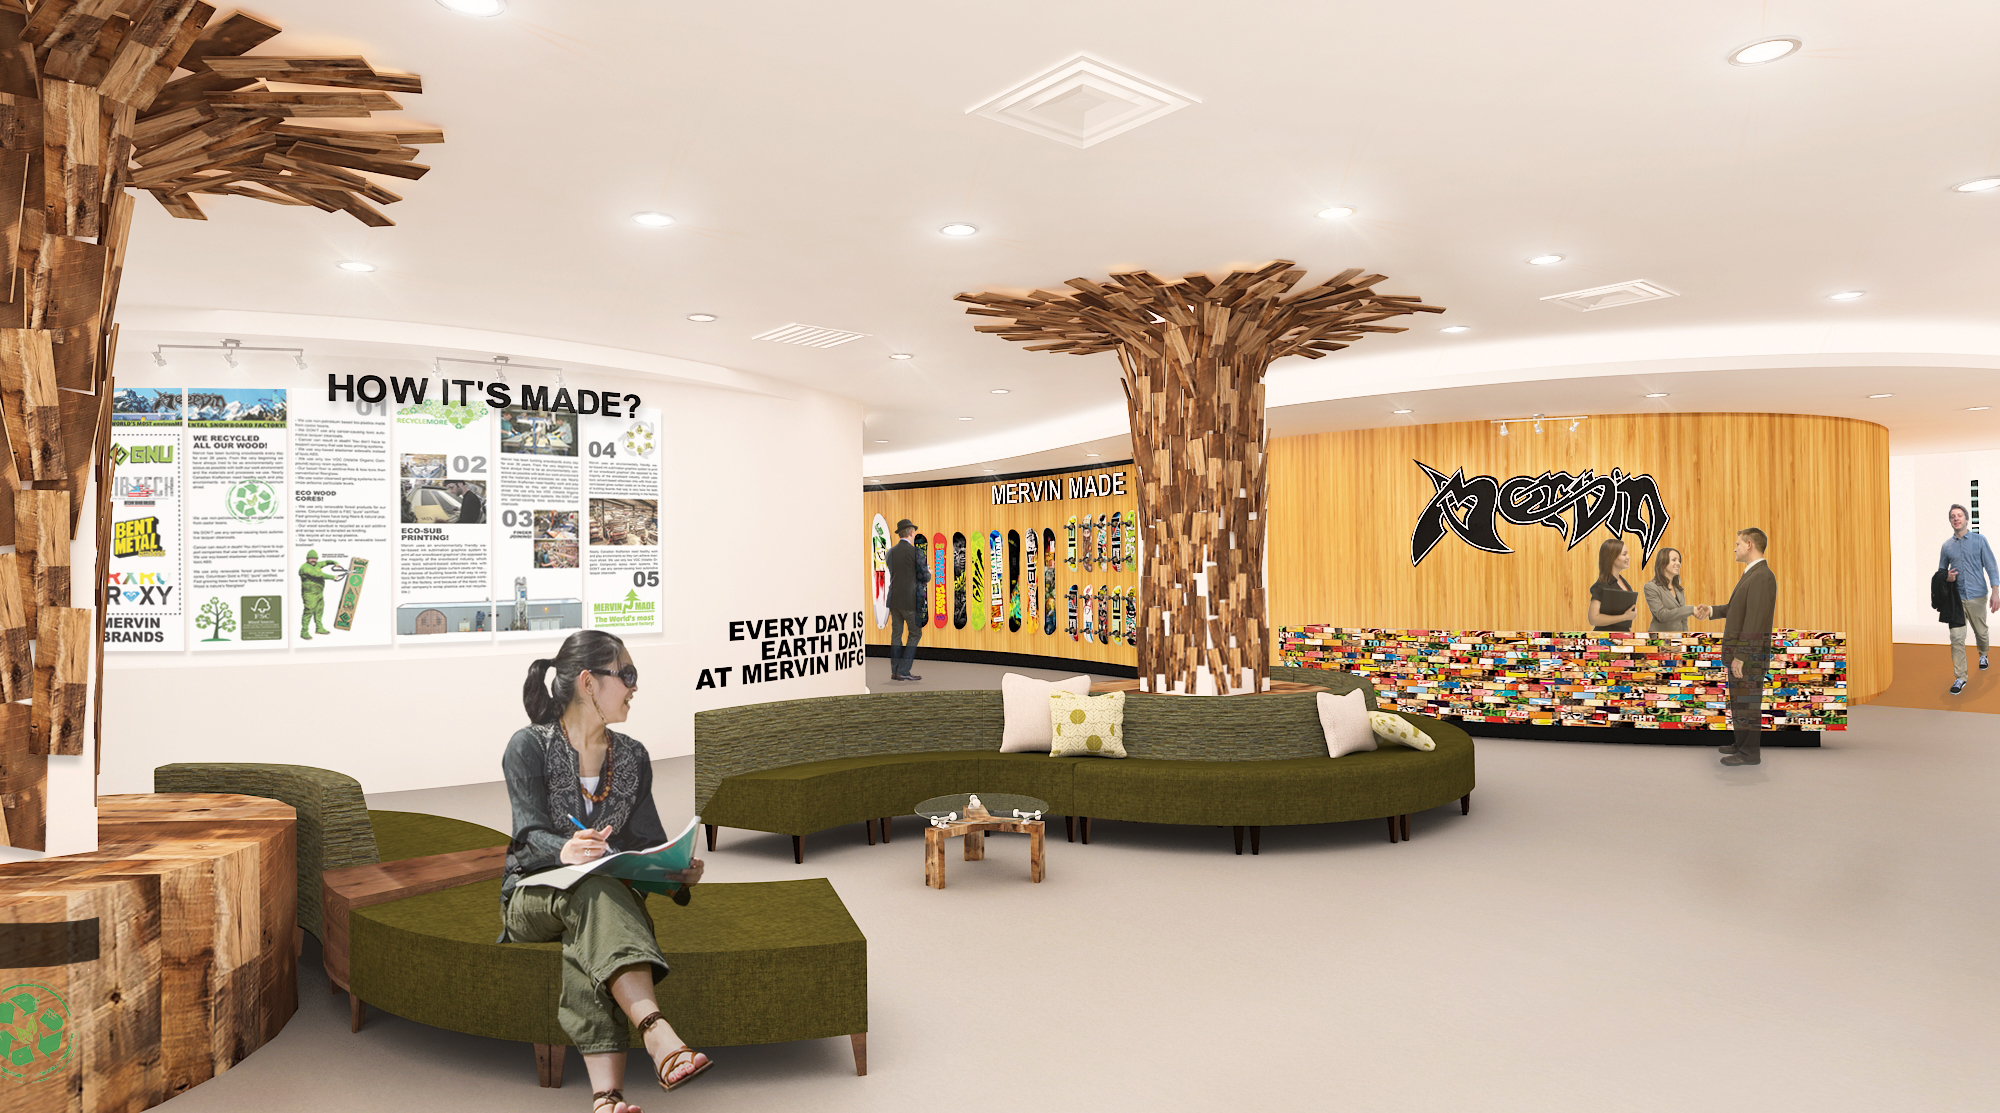 daungjai-masrungson-mervin-headquarters-mps-sustainable-interior-environments-commercial-project_17455688260_o.jpg